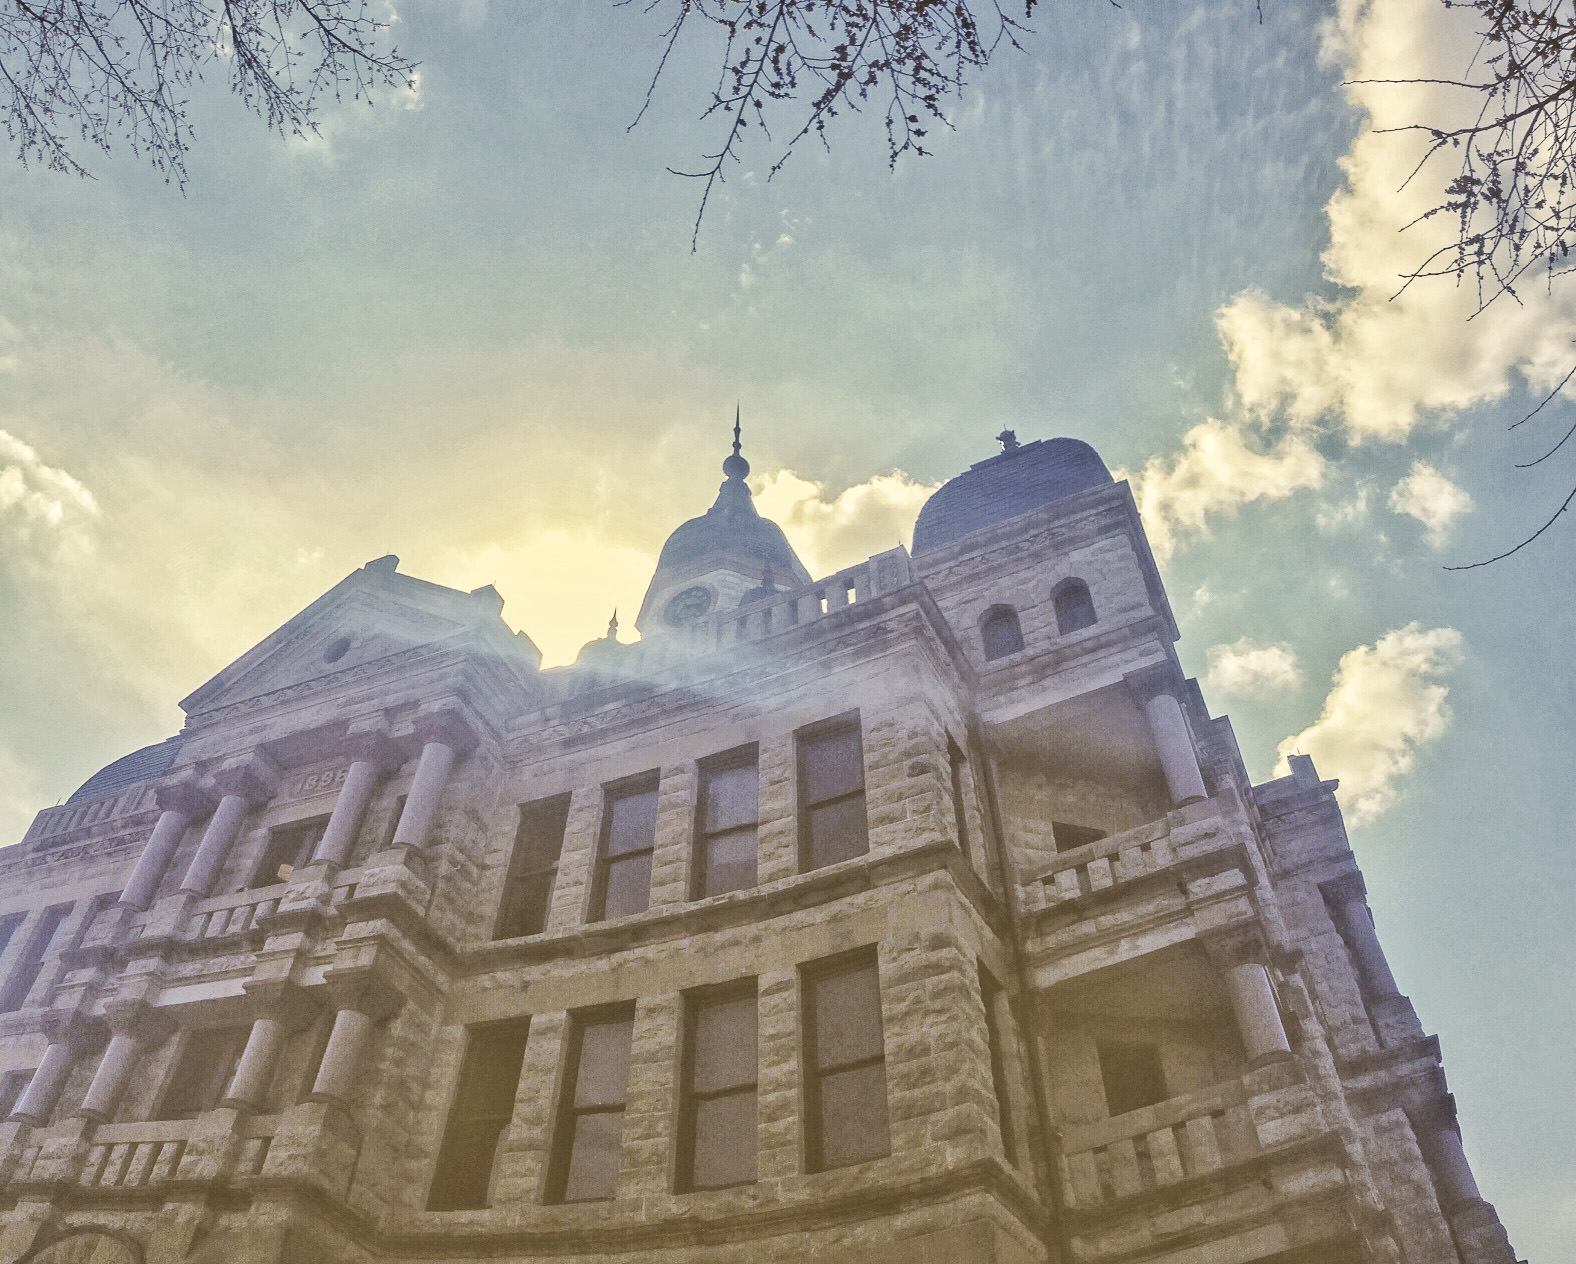 Did you read in that intro paragraph where we said we had good weather? This is what we meant. Of course, you kind of have to take a photo of the courthouse when the weather is nice (we think there's a law about it in town).